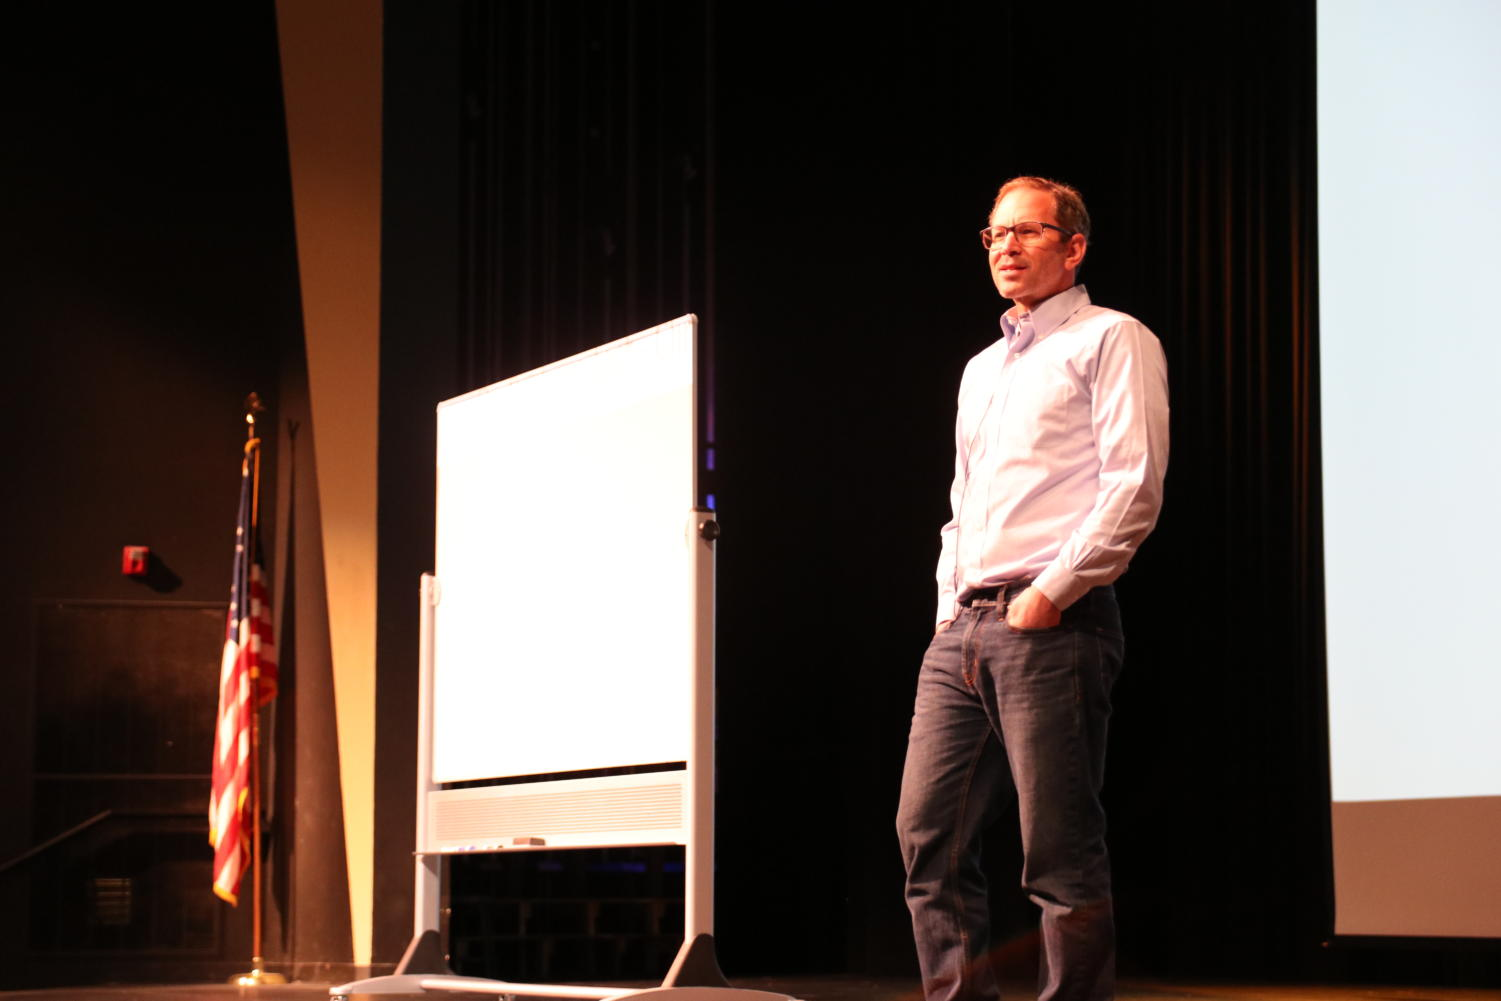 Herzog+begins+his+presentation+after+pulling+a+whiteboard+on+to+the+stage.+He+said+the+event%E2%80%99s+diversity+of+presenters+was+great.+%E2%80%9CHOSA+chose+some+really+great+people+to+come%2C%E2%80%9D+Herzog+said.+%E2%80%9CIt+gave+the+event+a+breath+of+topics+to+hear+about.%E2%80%9D+